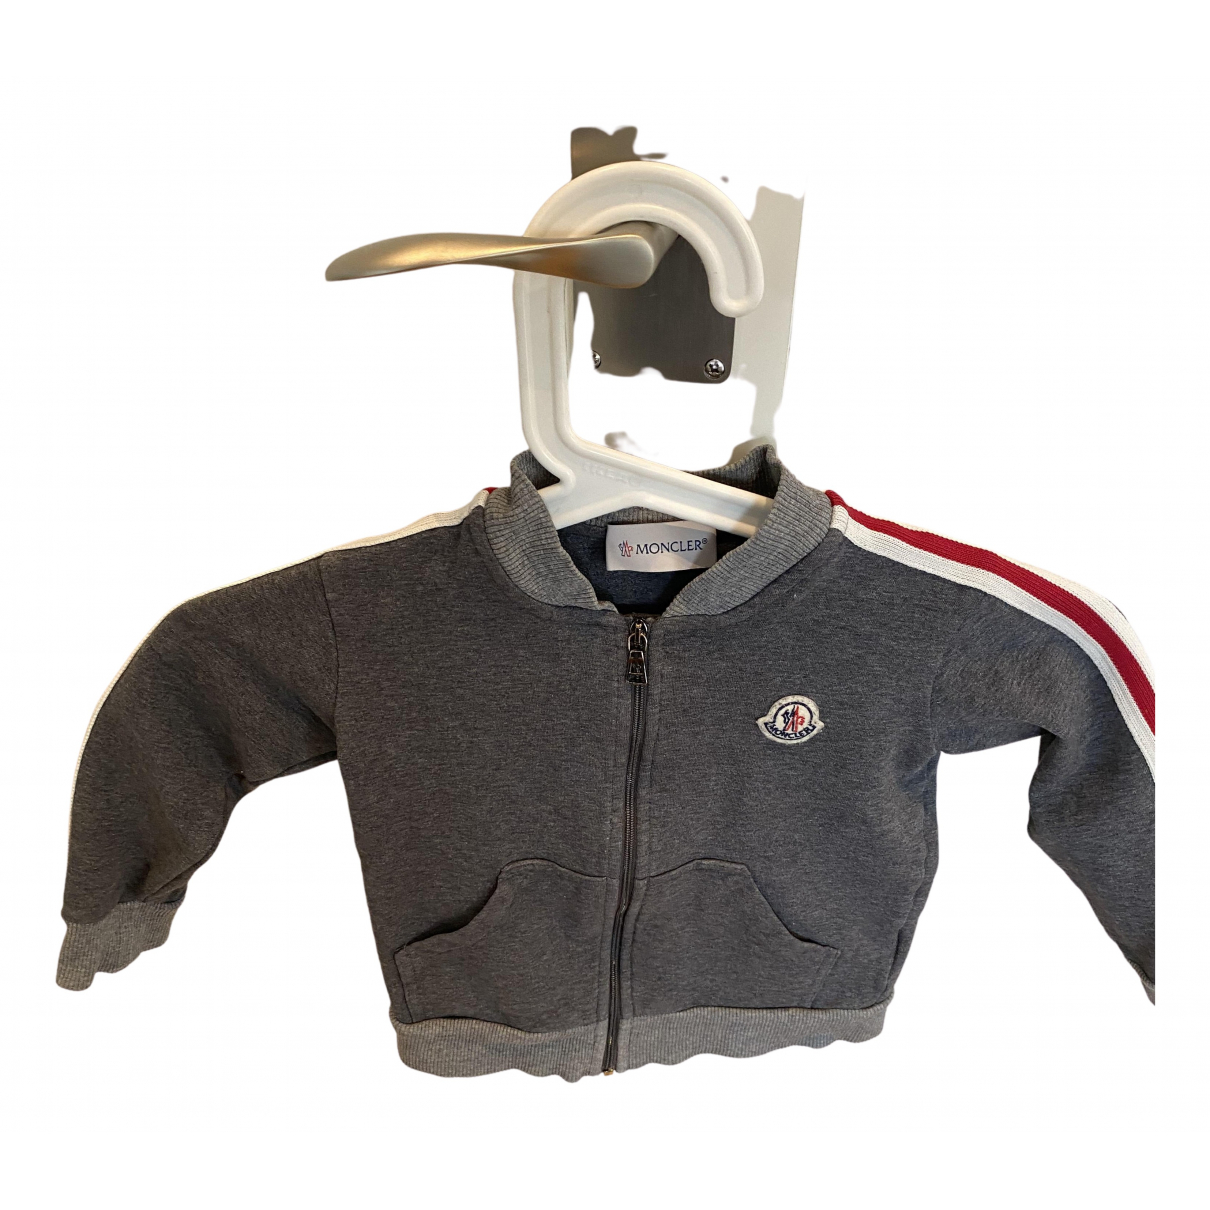 Moncler N Grey Cotton jacket & coat for Kids 2 years - up to 86cm FR